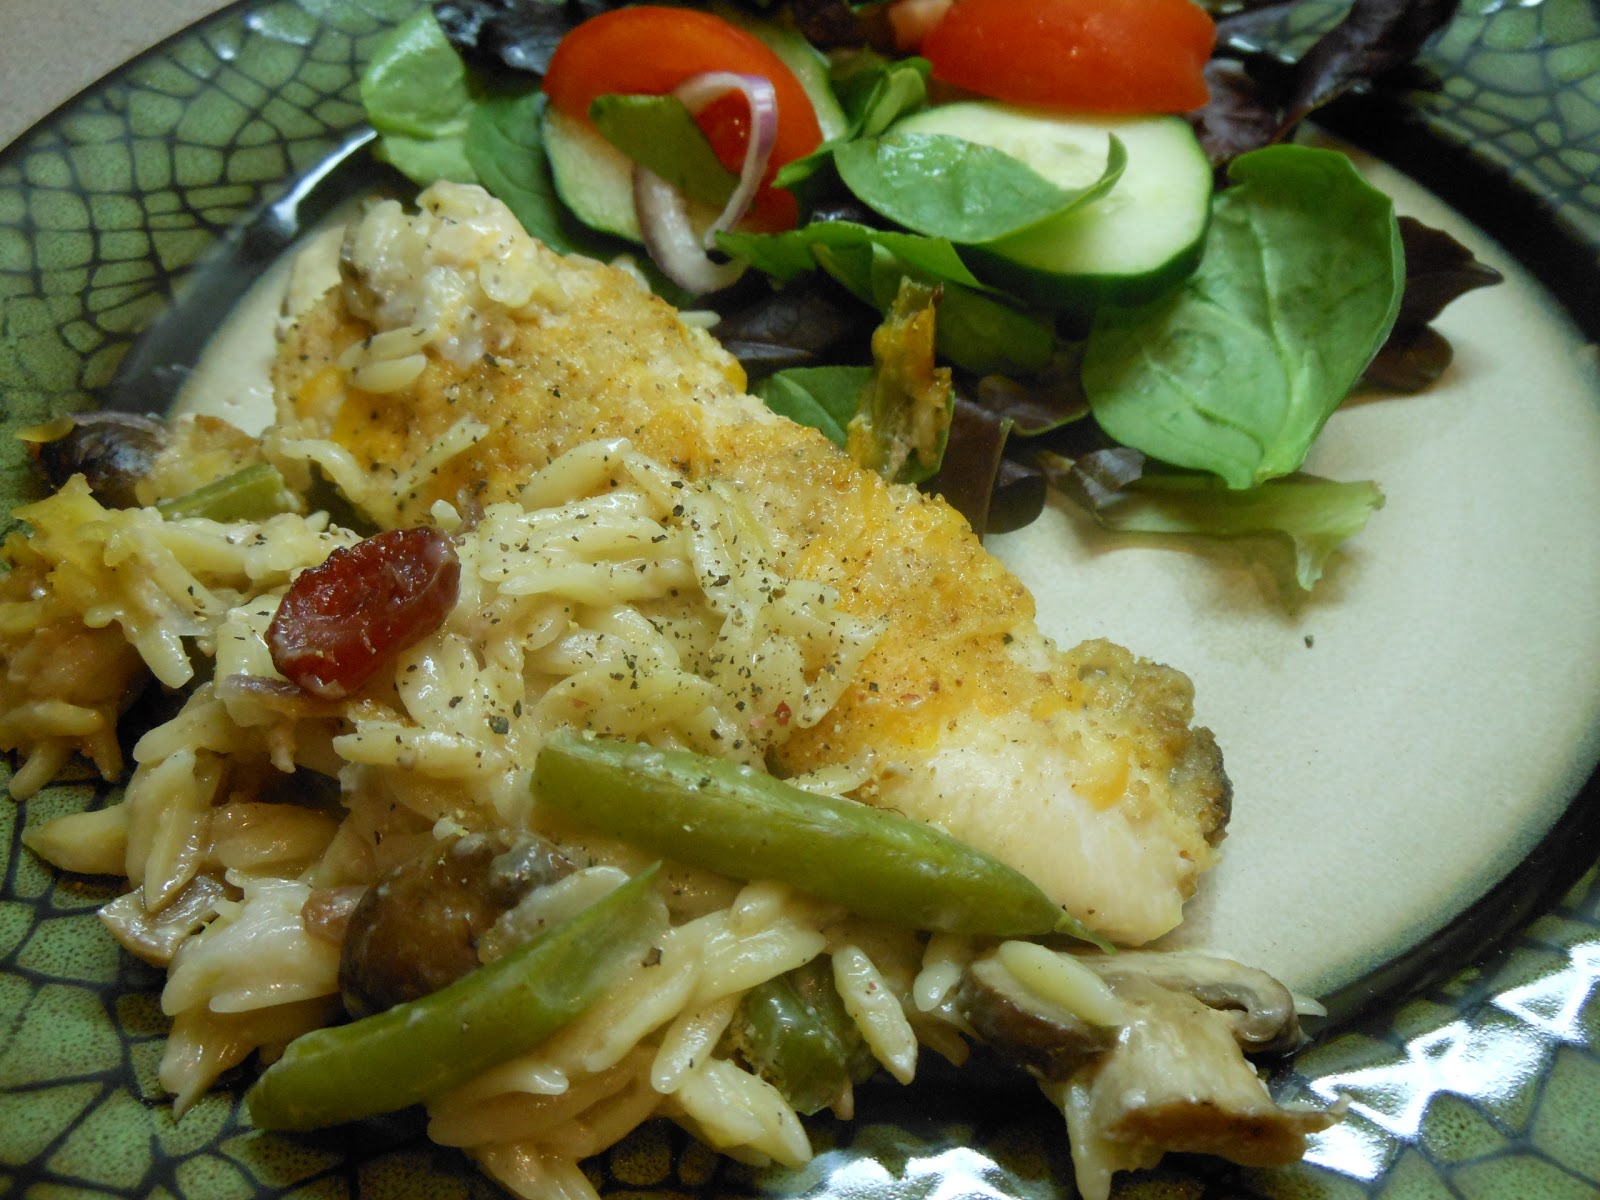 ... New Look for Nutrition: Chicken, Mushroom, and Green Bean Casserole